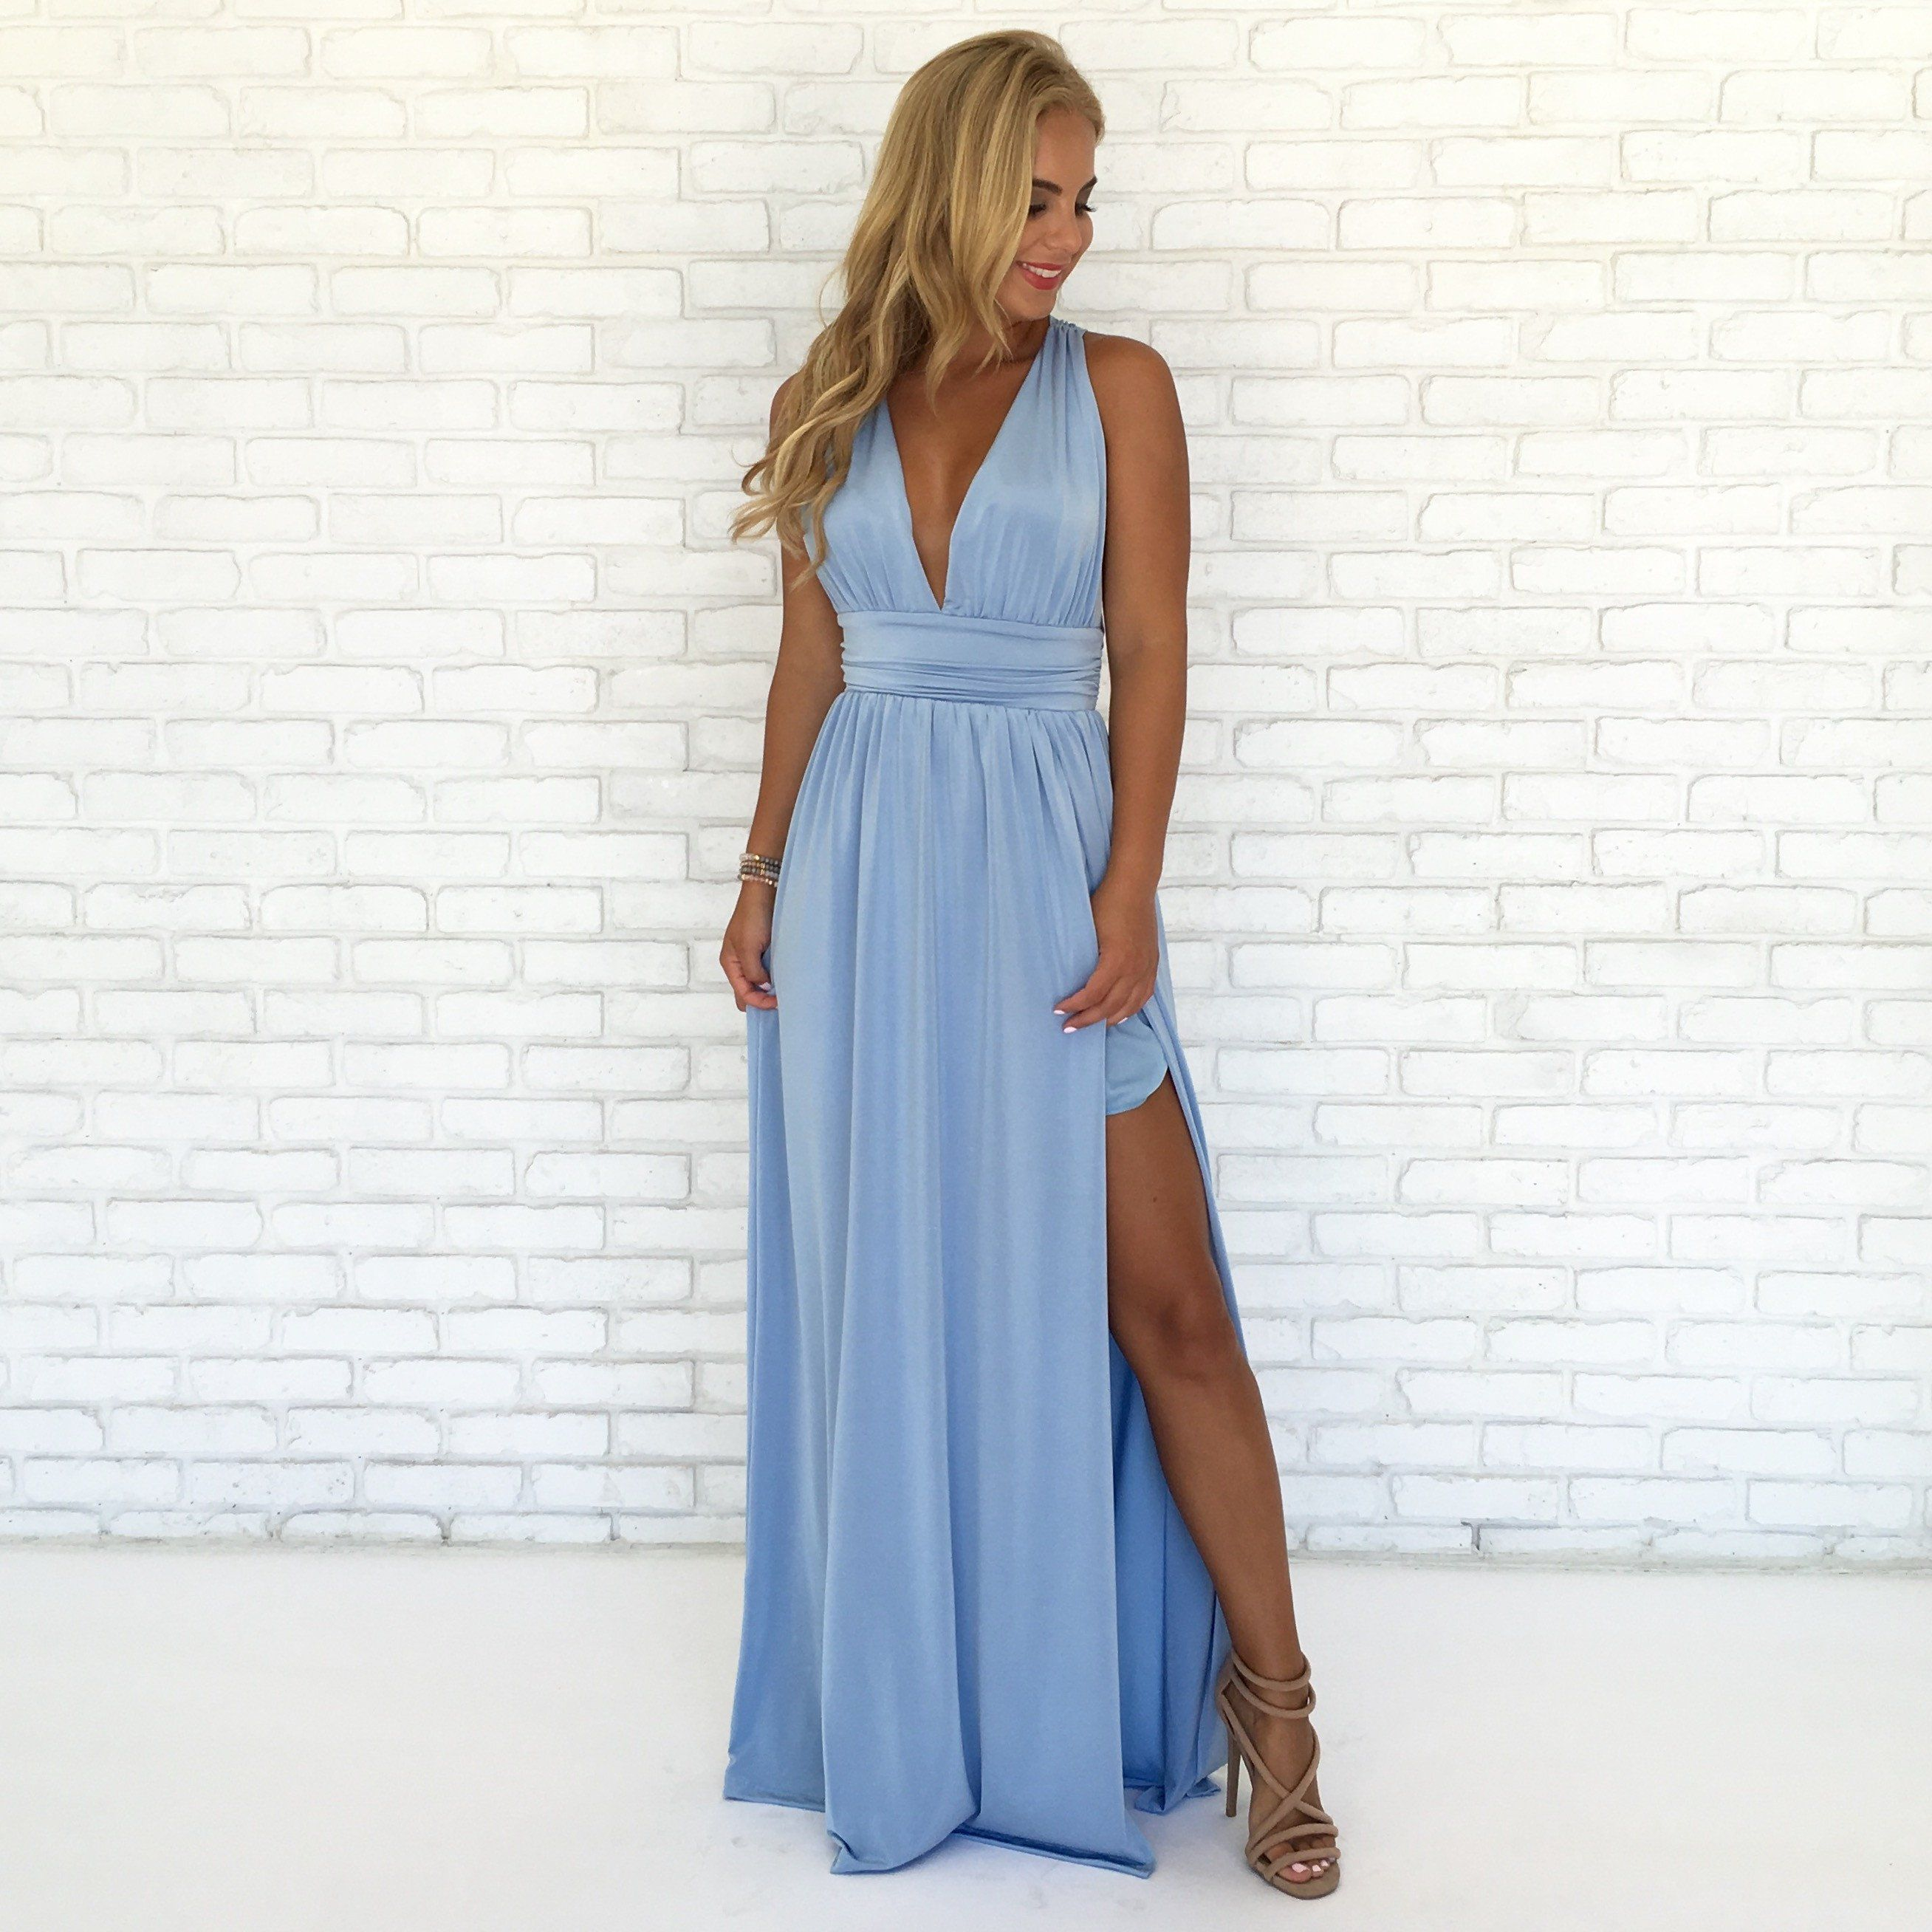 Always Your Girl Maxi Dress In Powder Blue | Girls maxi dresses ...